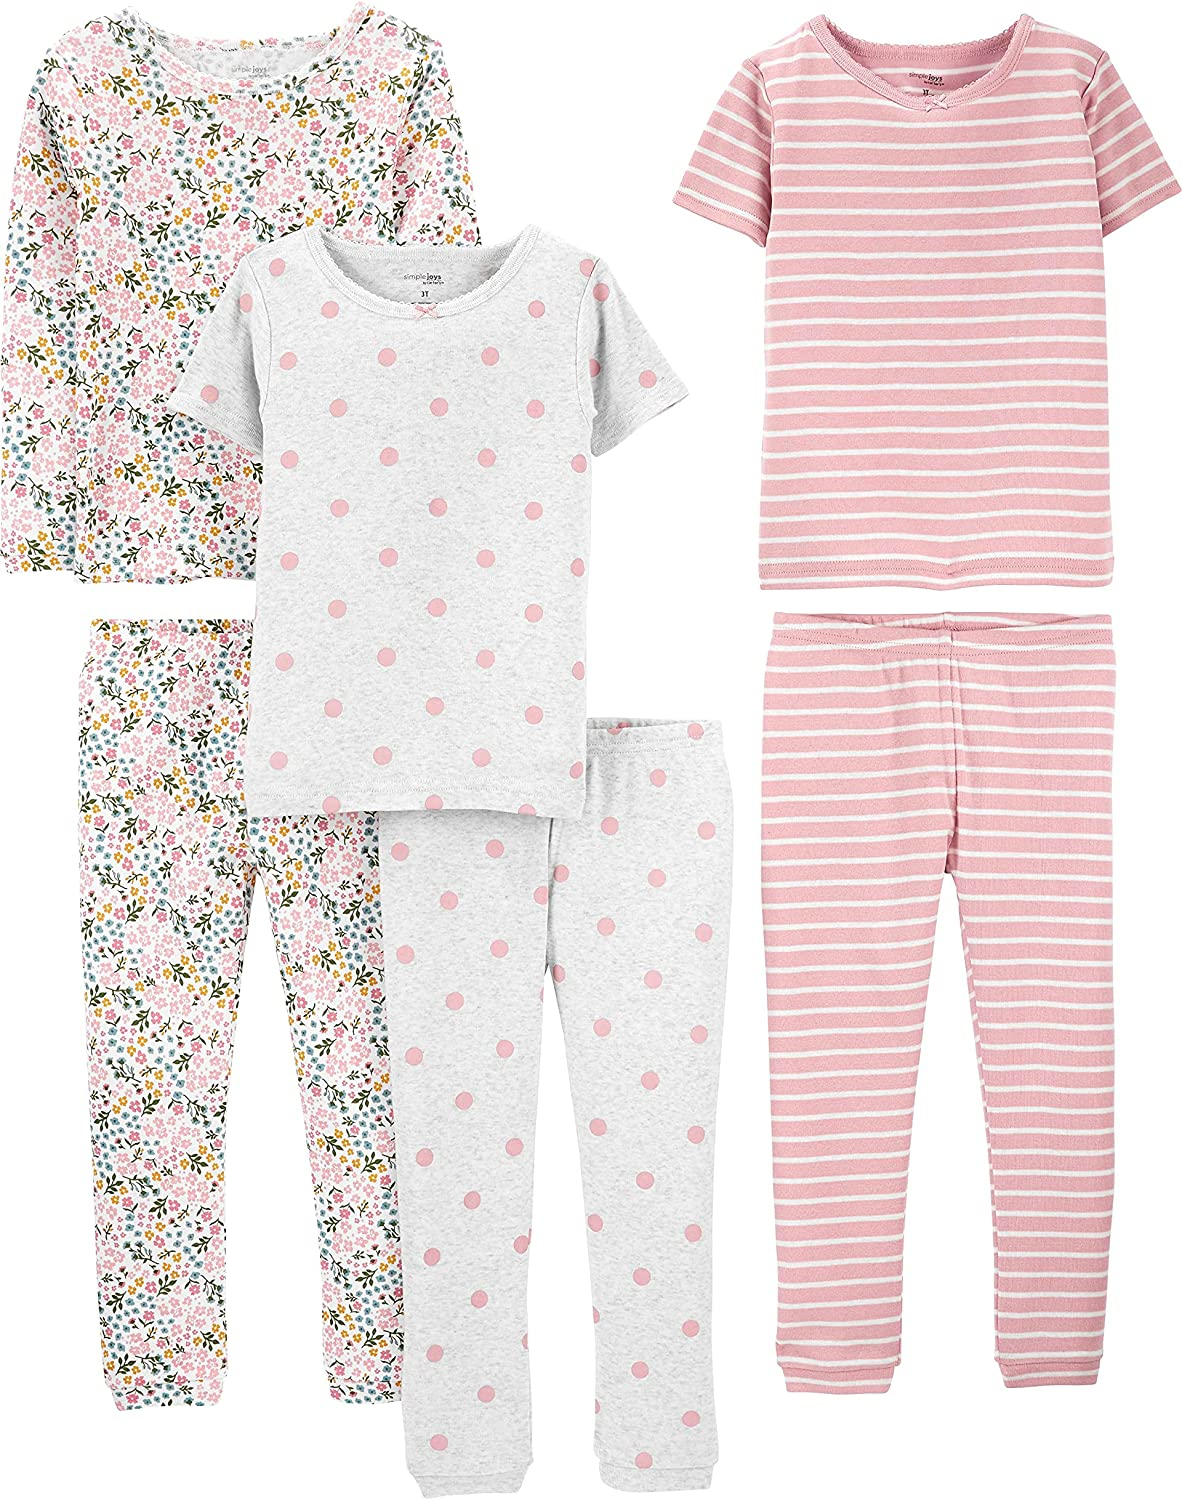 Simple Joys by Carter's Baby, Toddler, and Little Girls' 6-Piece Snug-fit Cotton Pajama Set